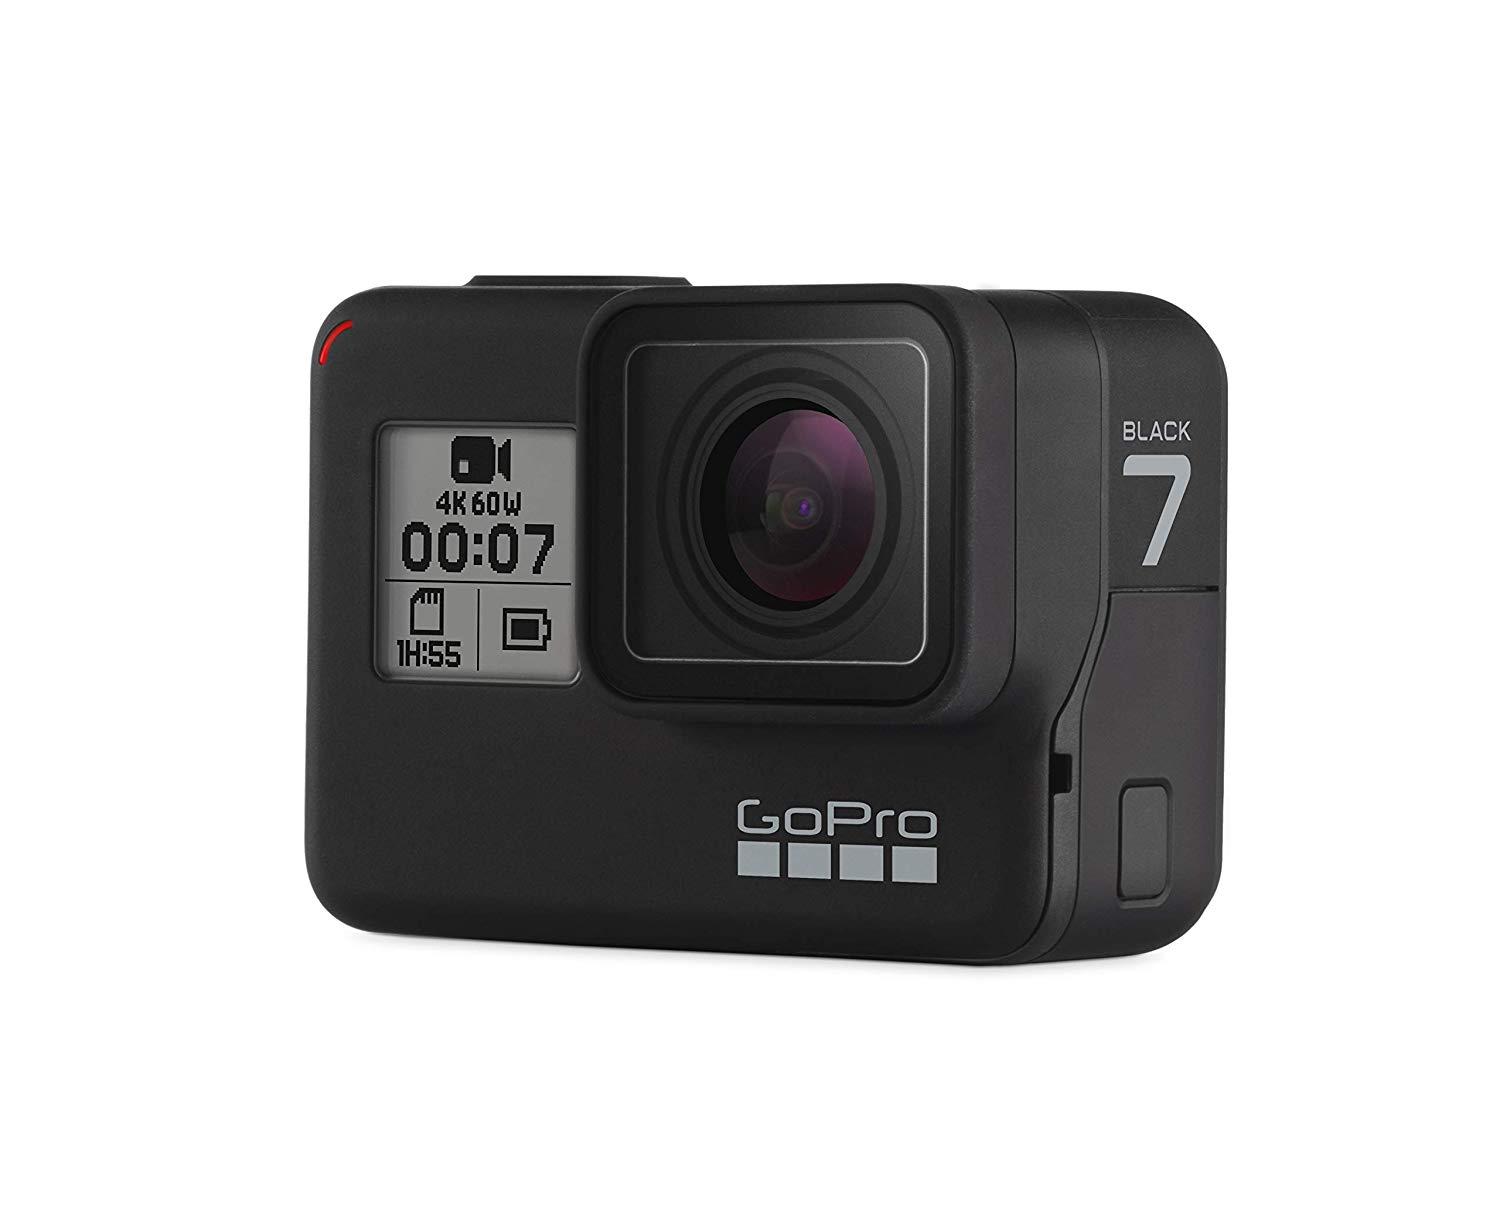 Image result for gopro hero 7 black